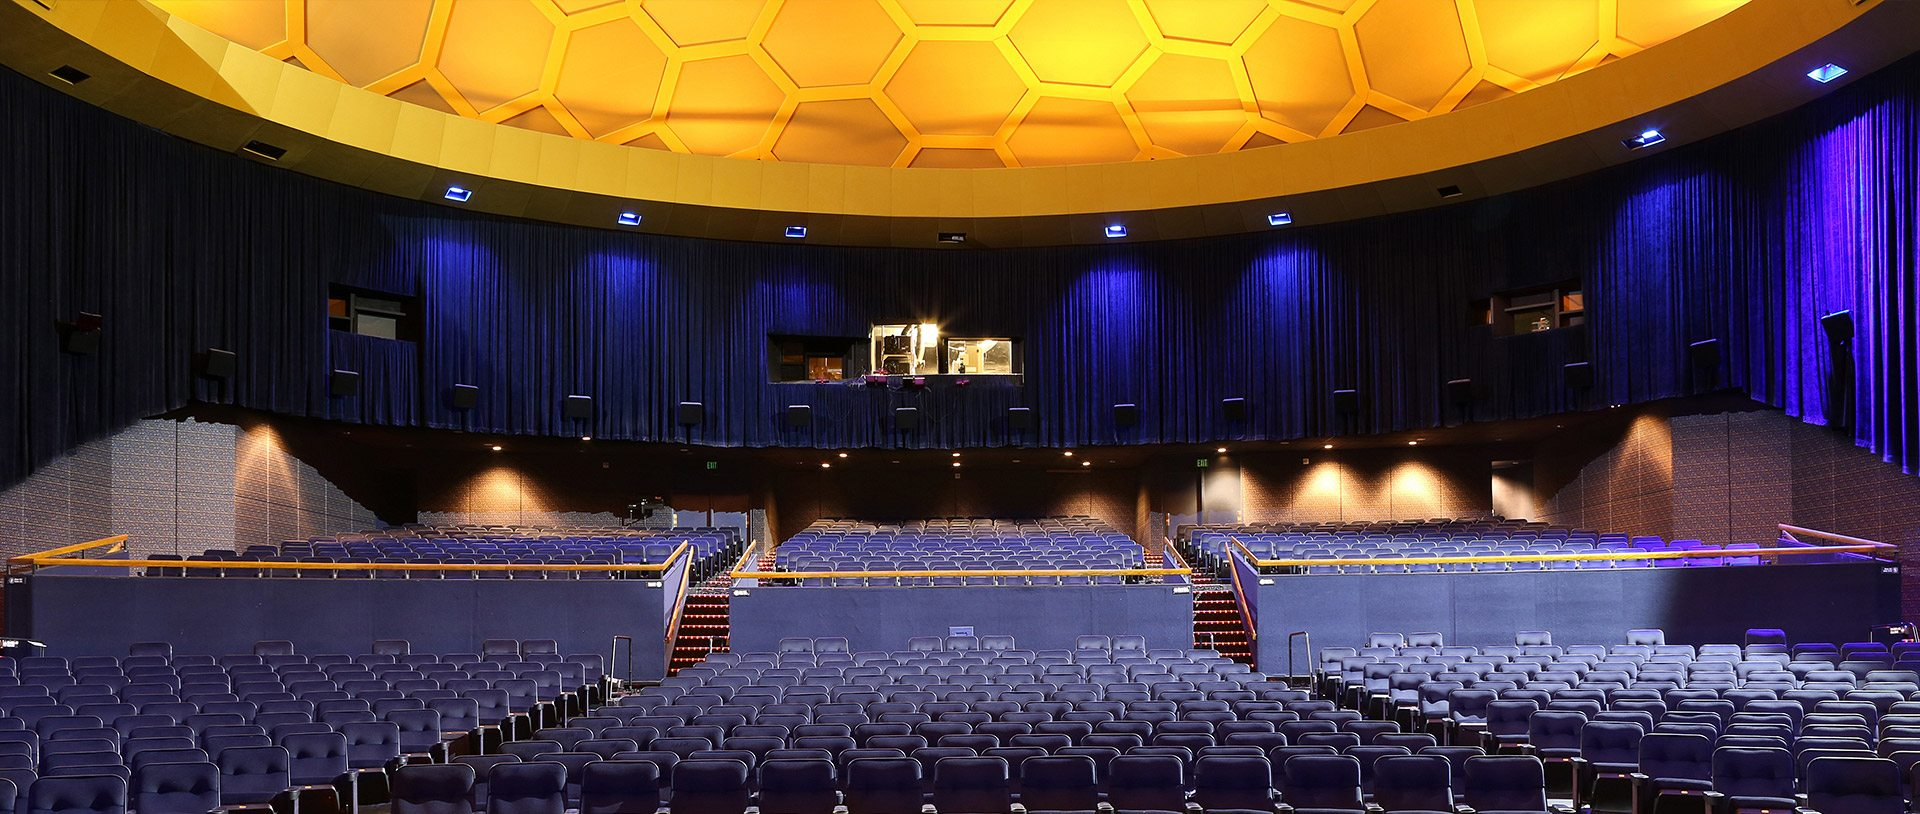 ArcLight Hollywood Cinerama Dome Seating and Projection Booth